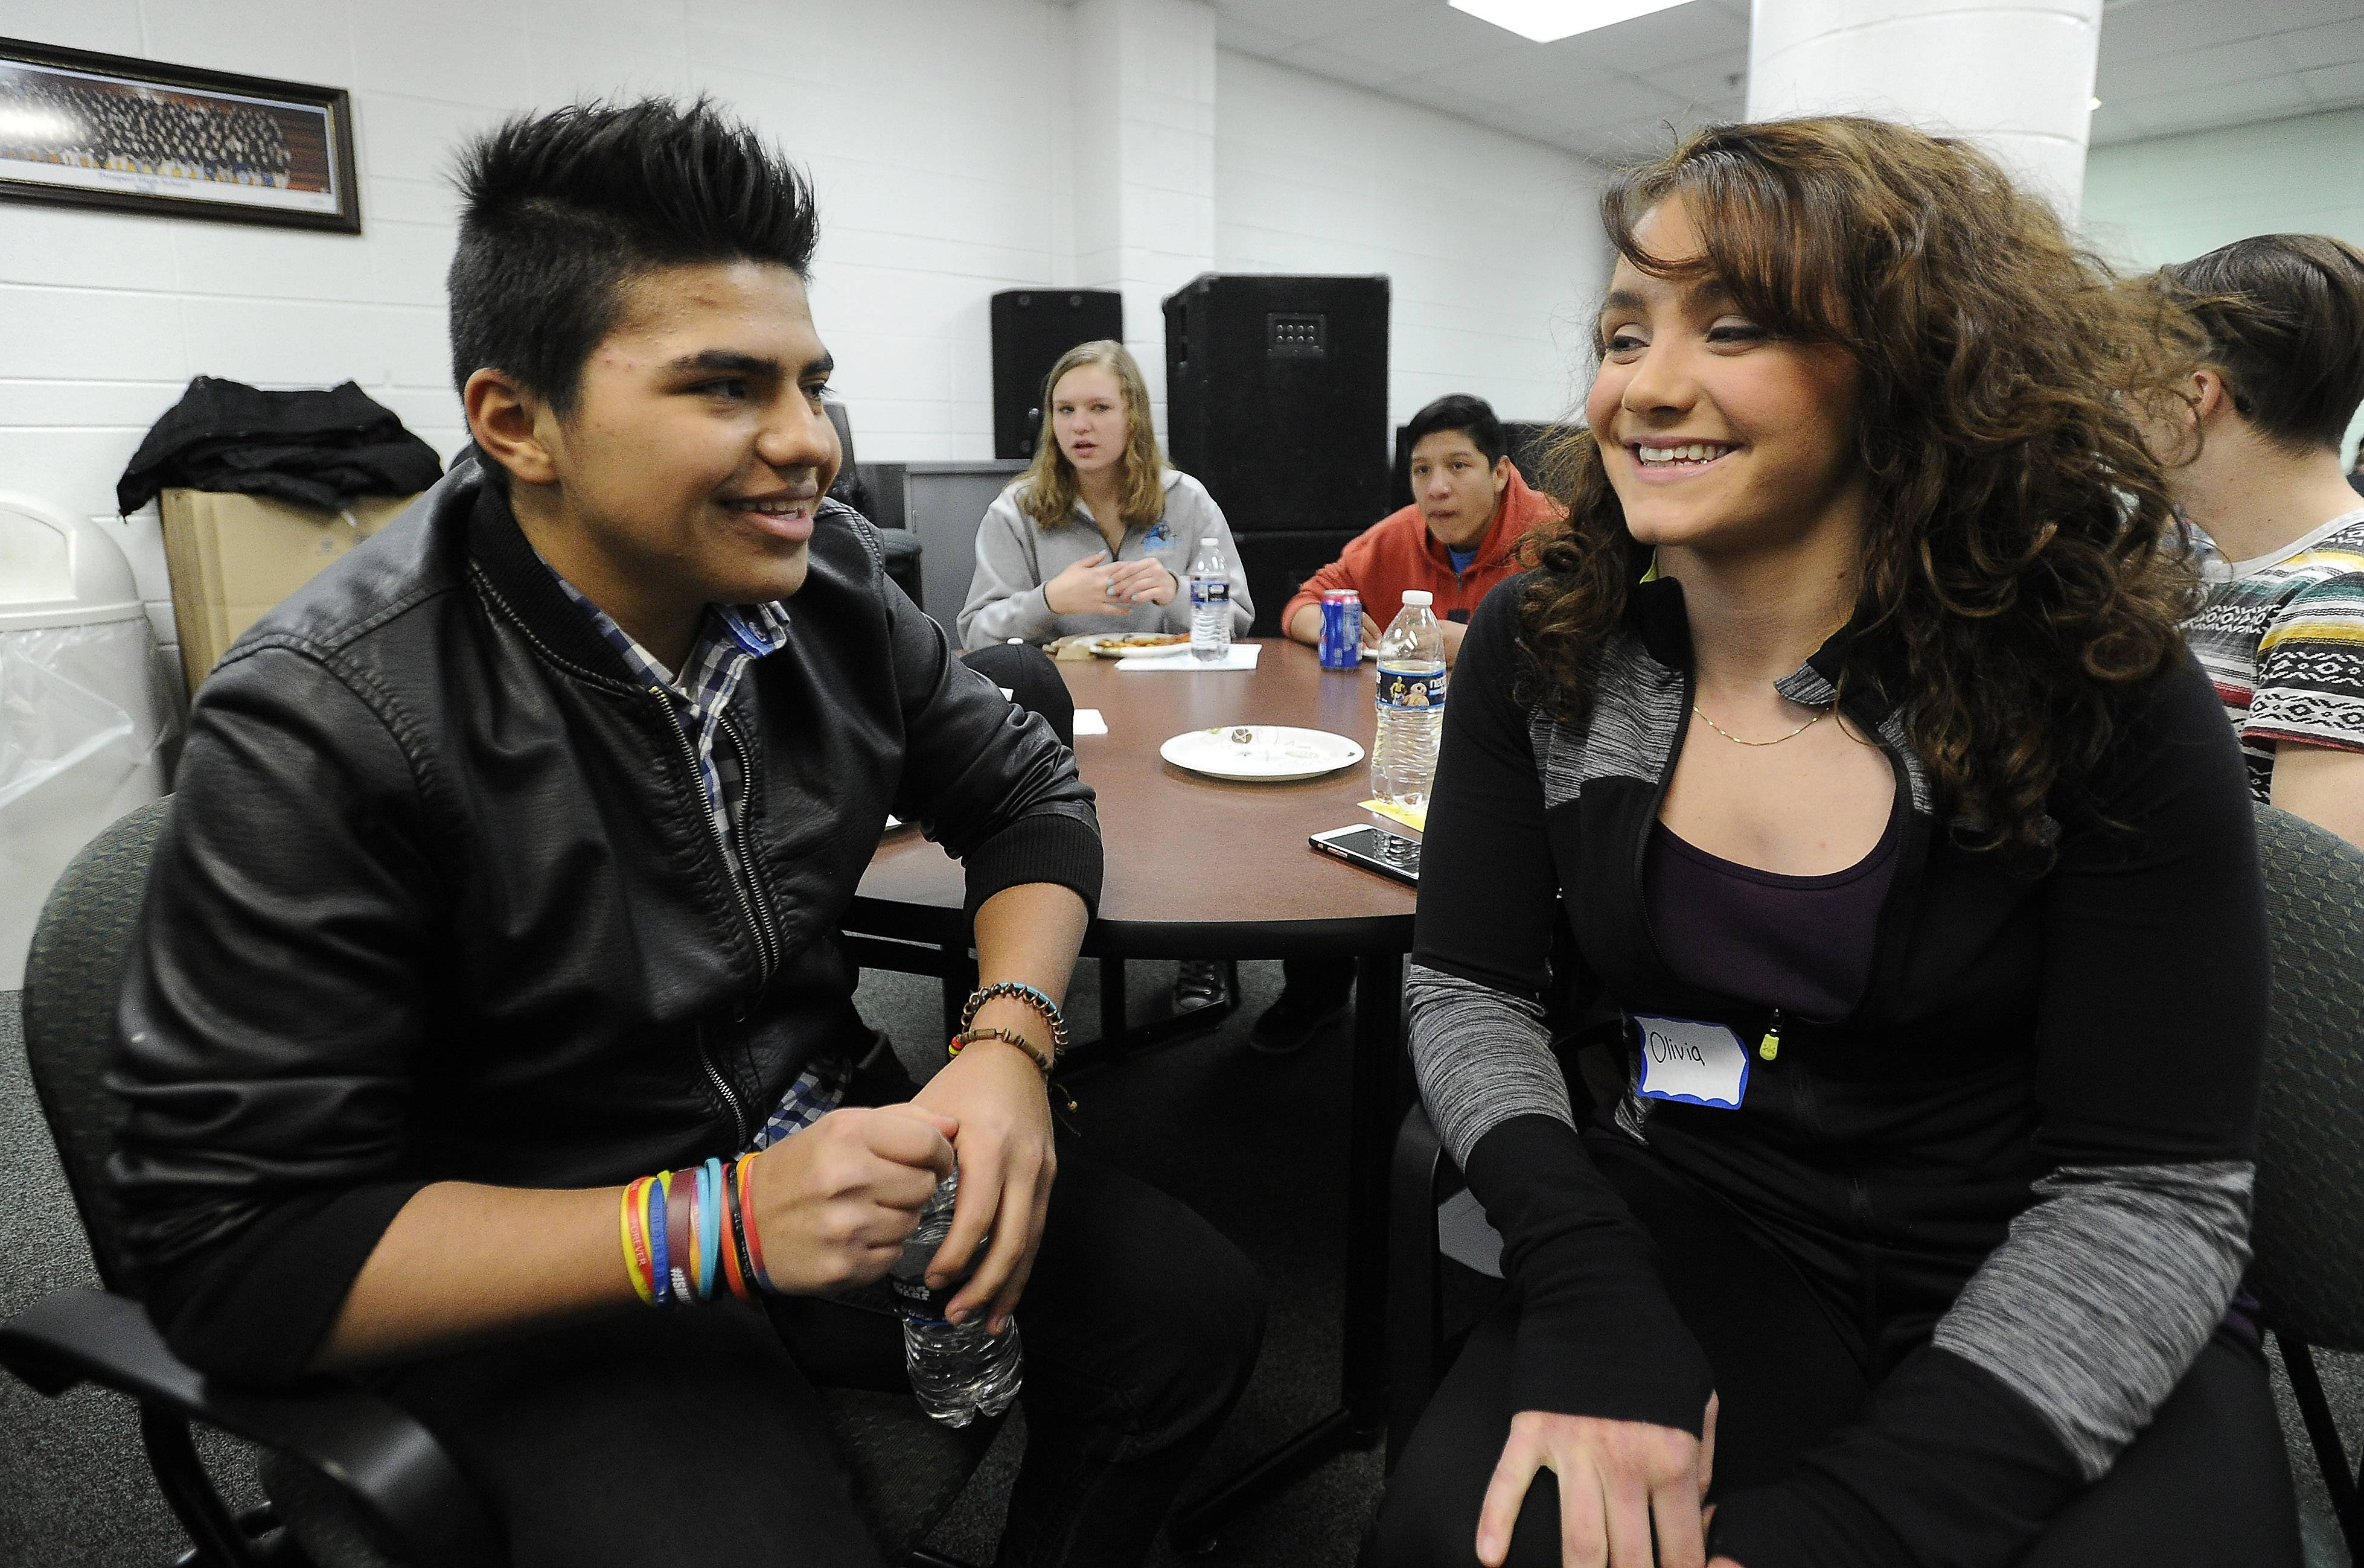 Prospect High School AP Spanish students have pizza with their pen pals who attend the Newcomer Center with a student body of about 36 students. Prospect senior Olivia Sullo, 18, talks with her pen pal David Sarmiento.